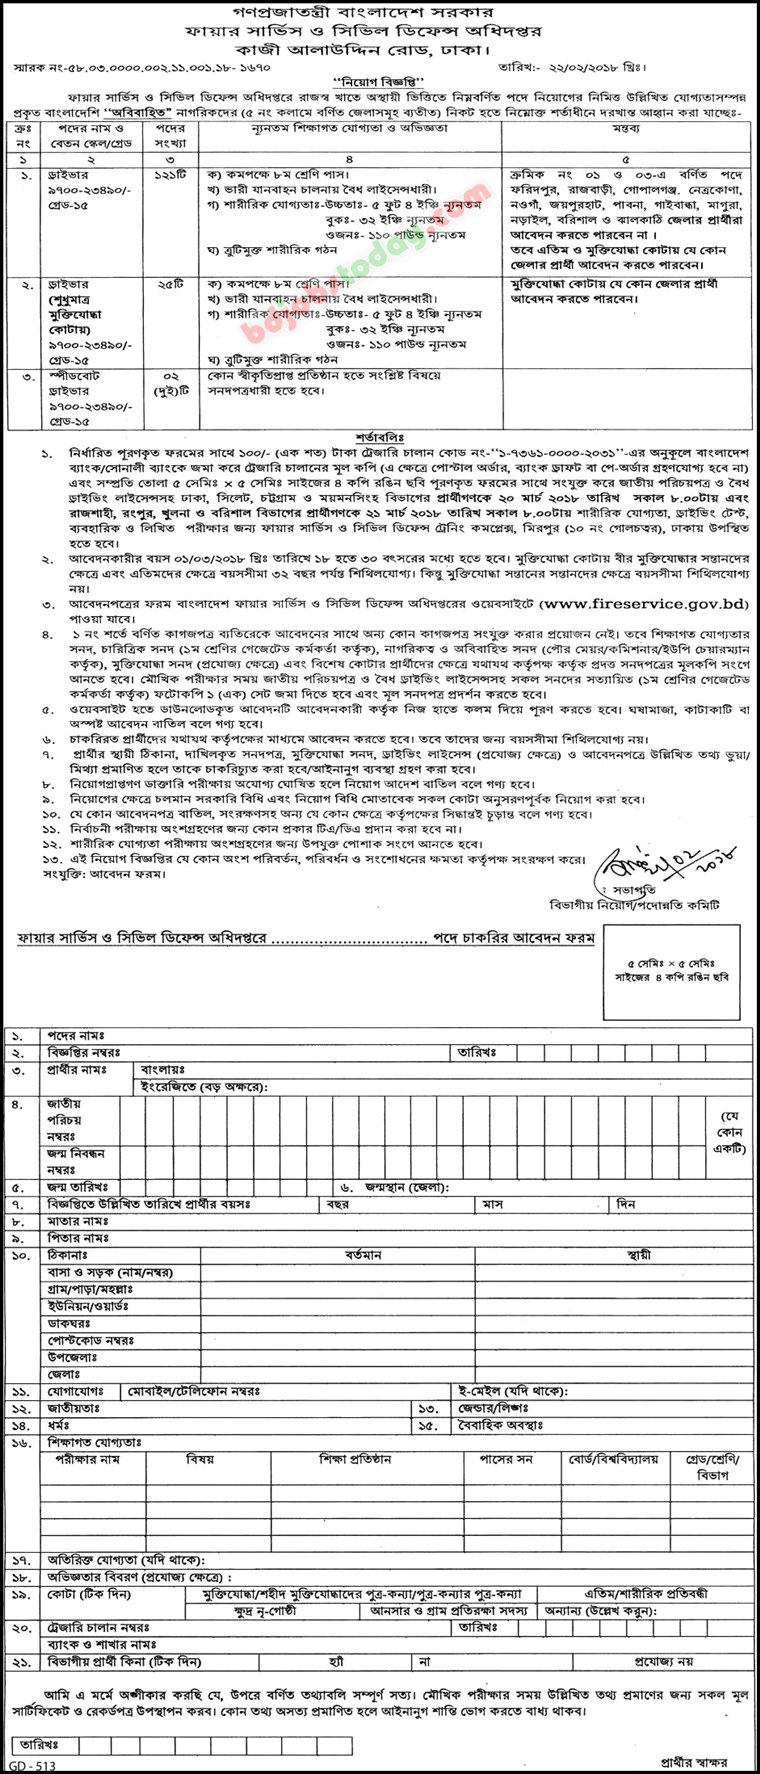 Bangladesh Fire Service and Civil Defence jobs